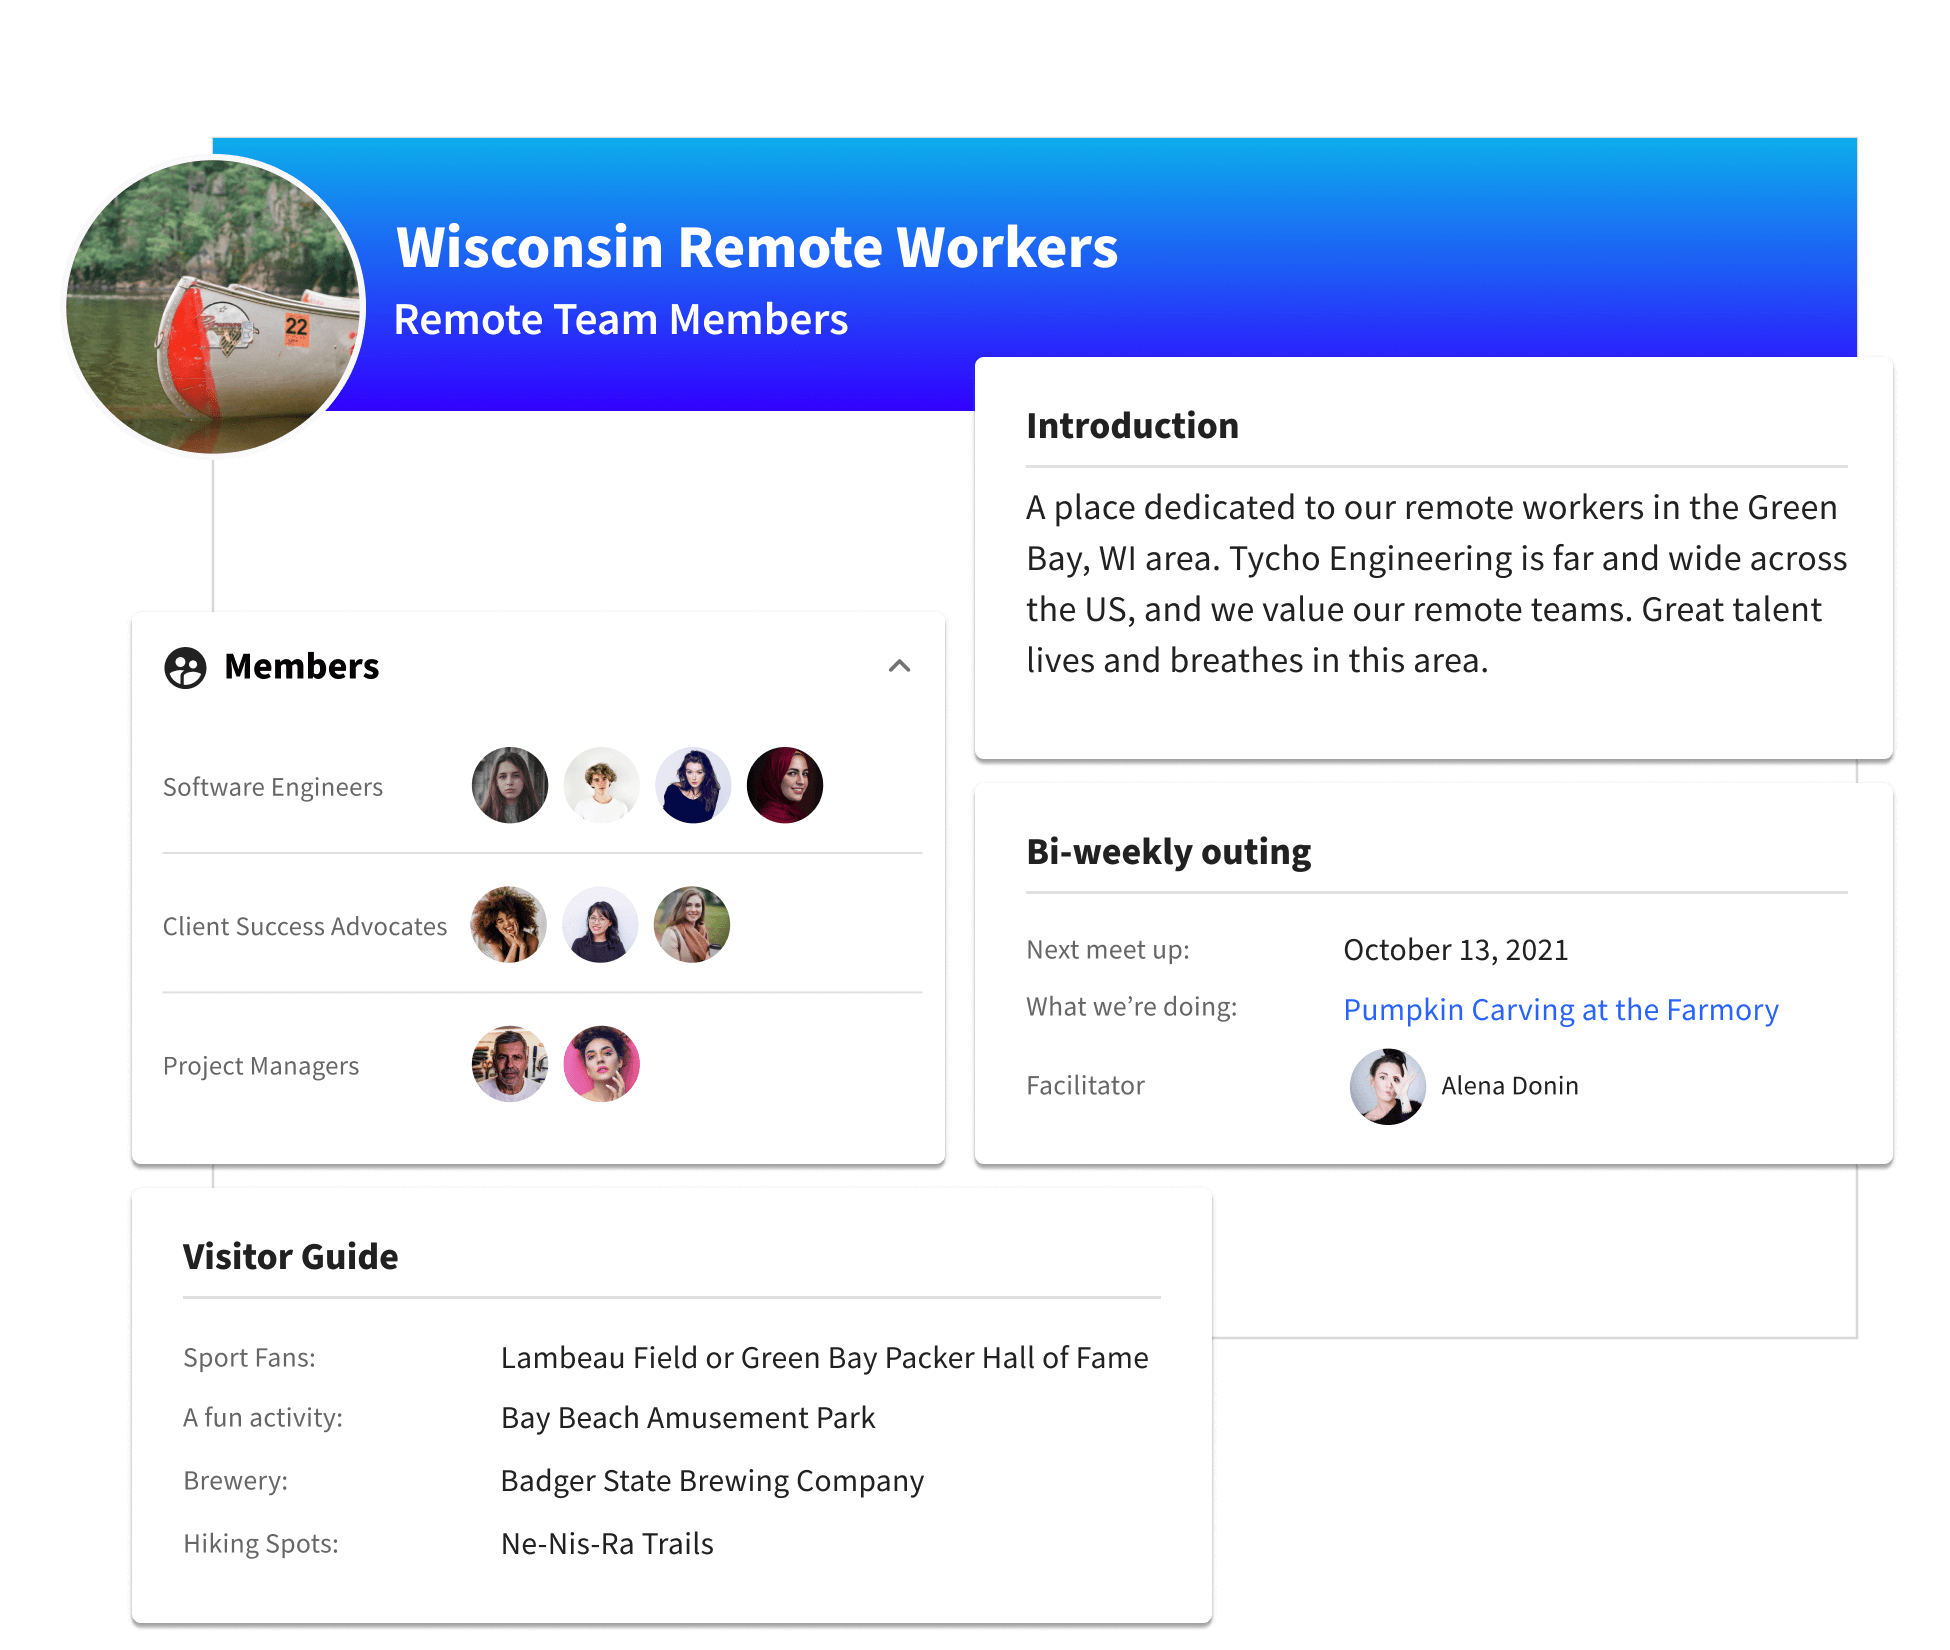 A profile for remote workers in a specific area